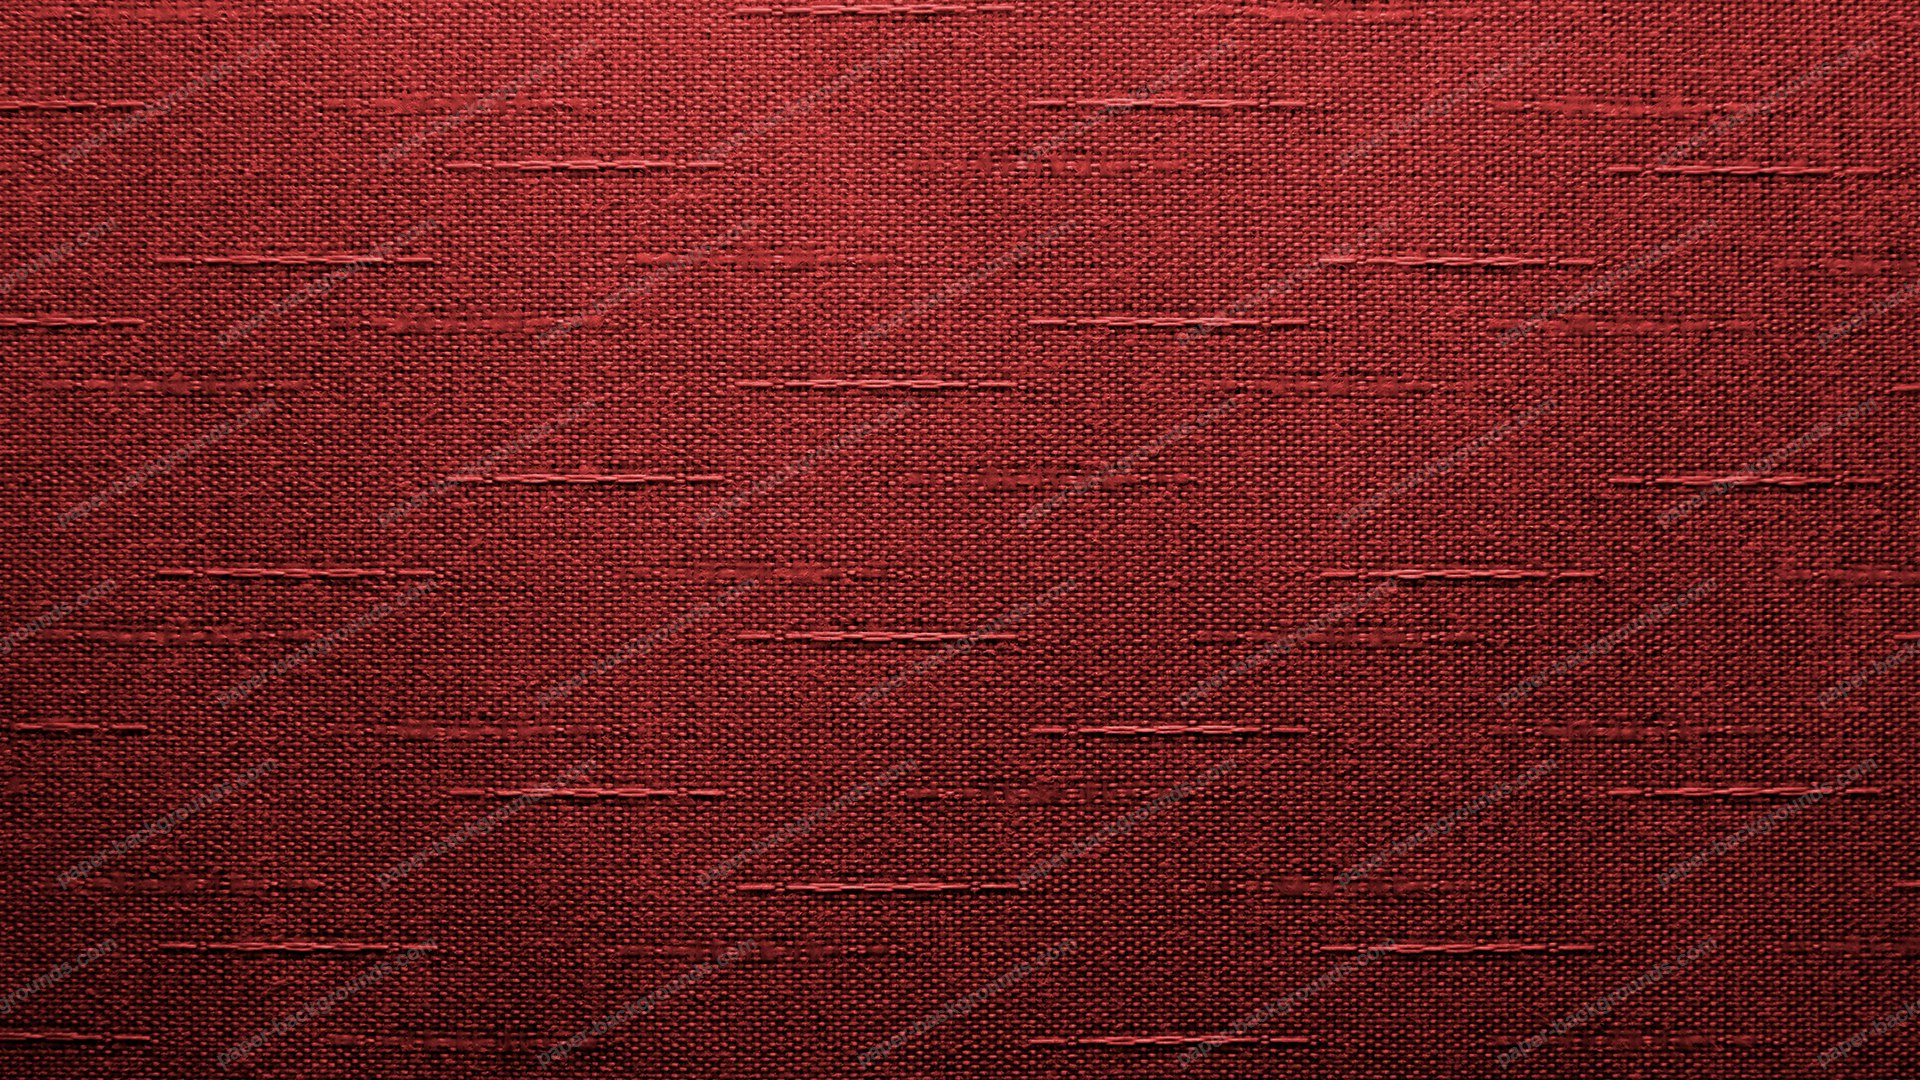 Red Canvas Texture Background HD 1920 x 1080p